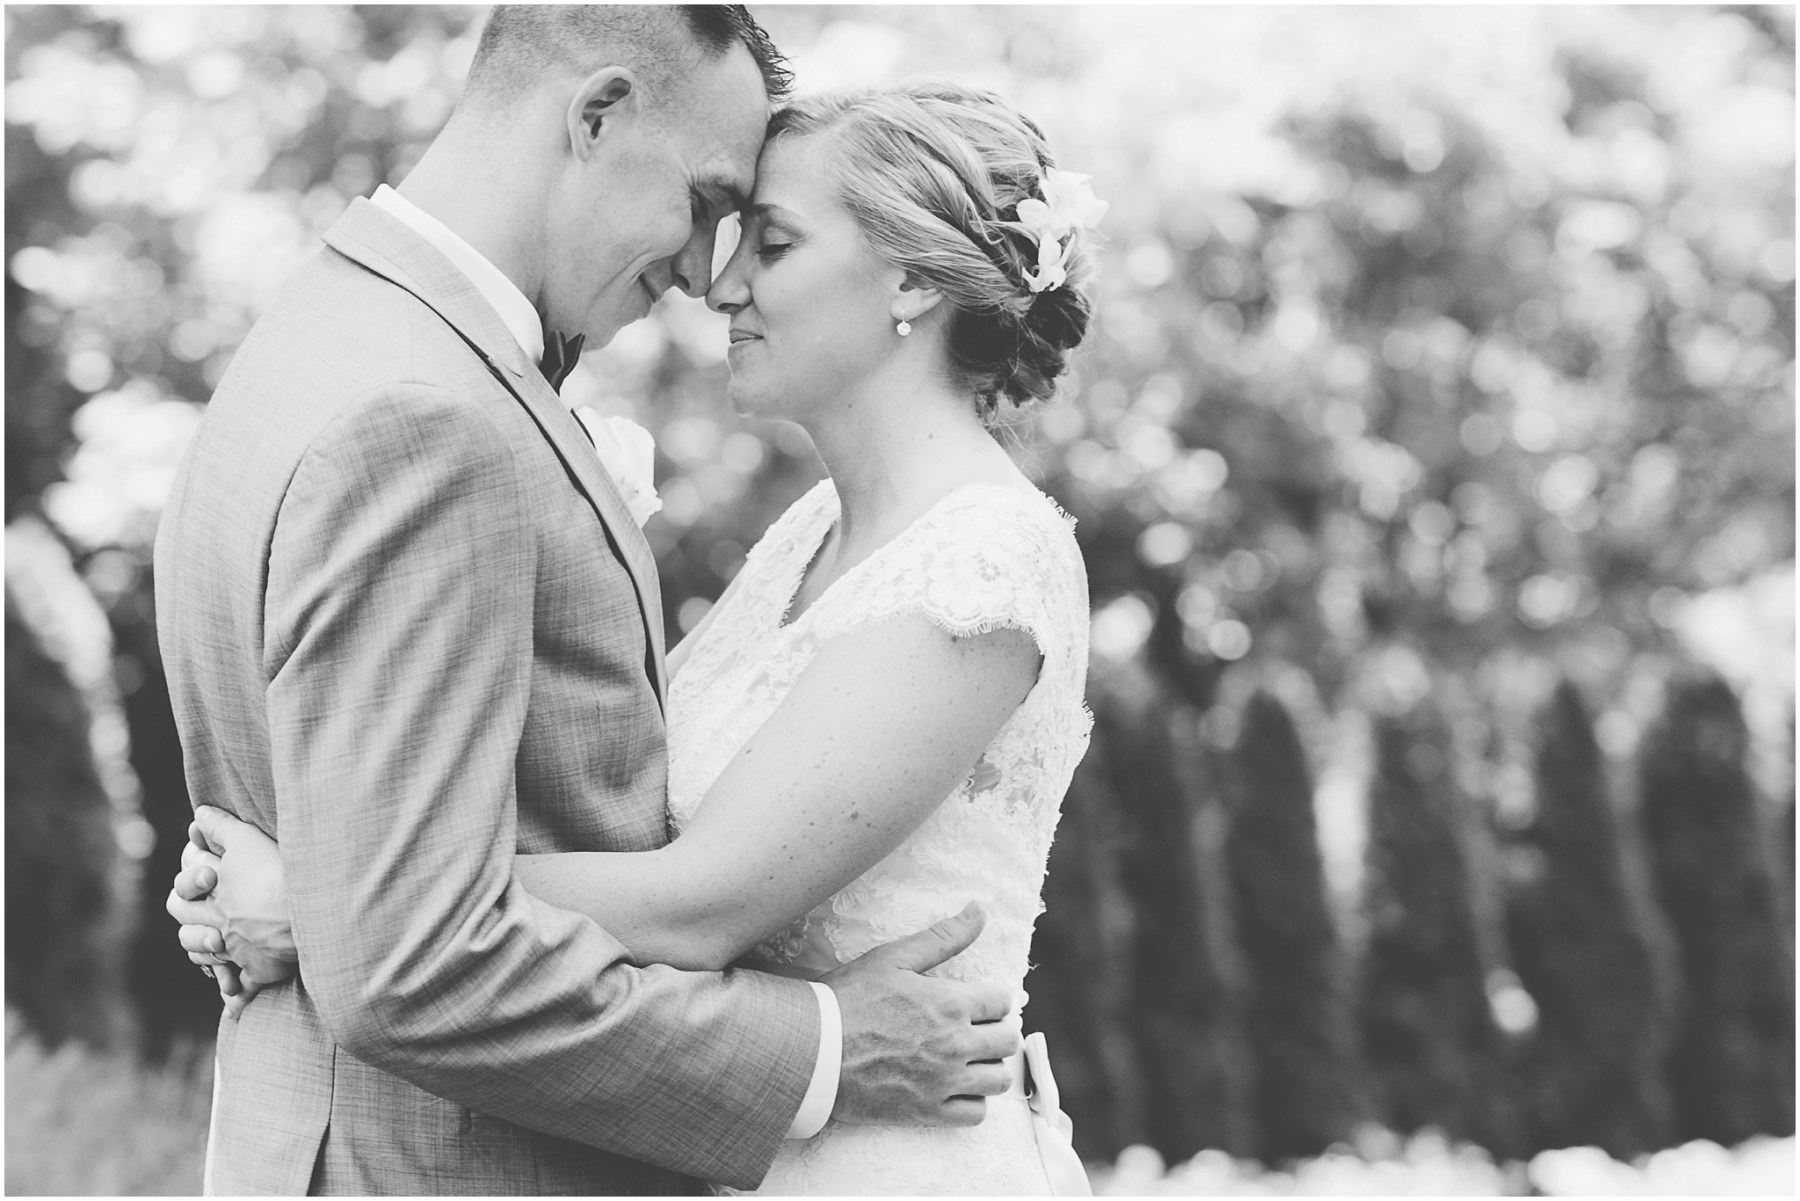 Bride and groom photo at th William Penn Inn captured by Ardita Kola Photography